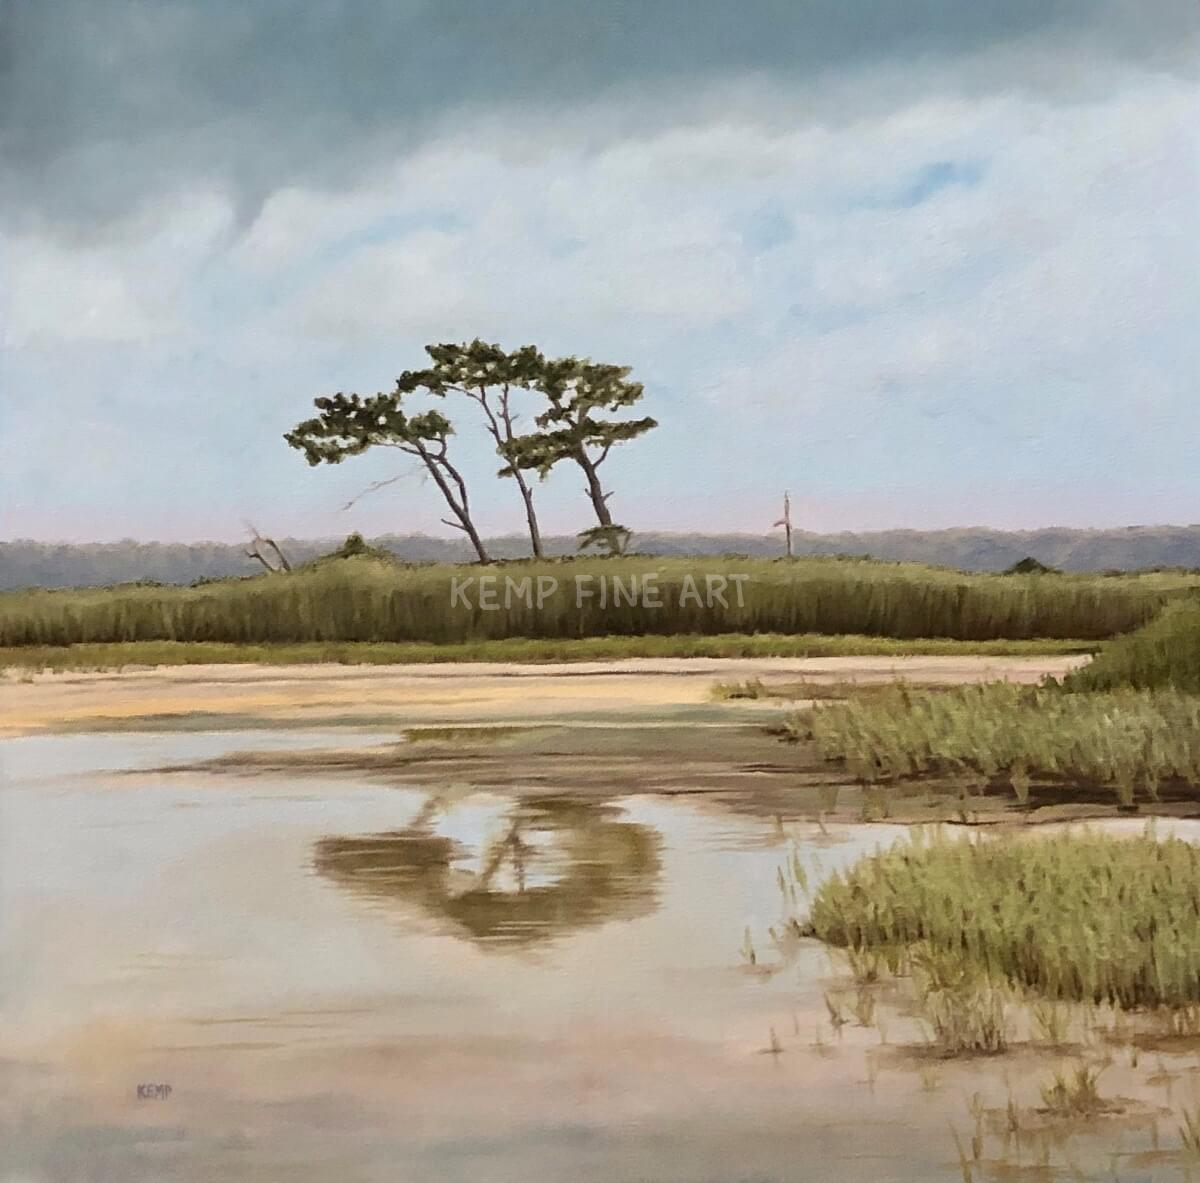 Leaning Left | Oil on Canvas - by Jim Kemp